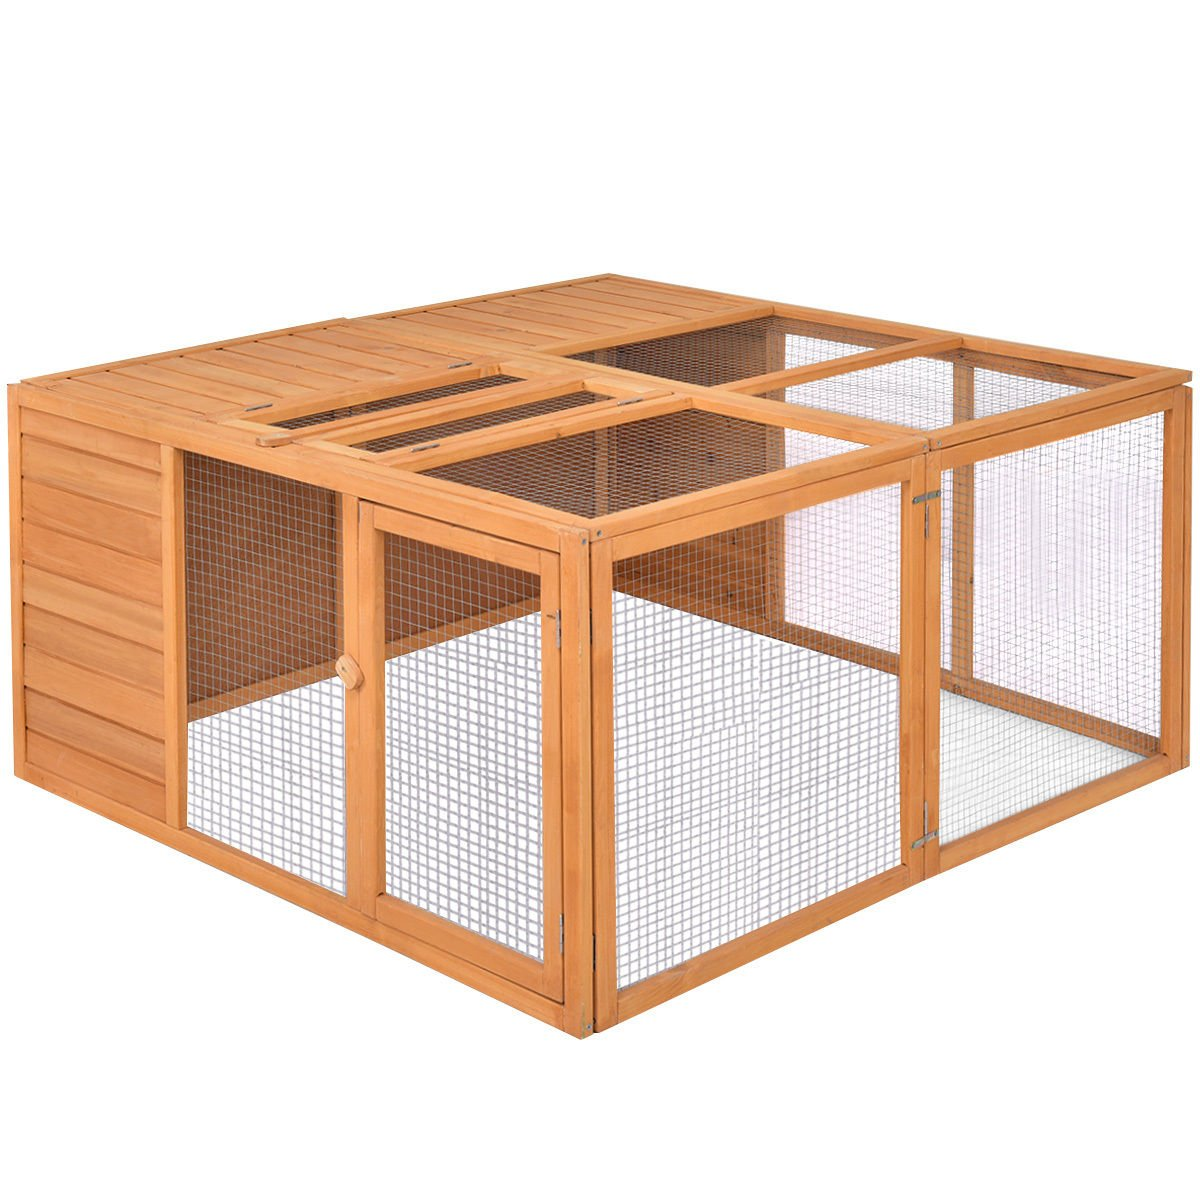 Tangkula Chicken Coop, Wooden Garden Backyard Bunny Chicken Rabbit Duck Small Animals Cage with 2 Doors,Hen House (47'') by Tangkula (Image #4)